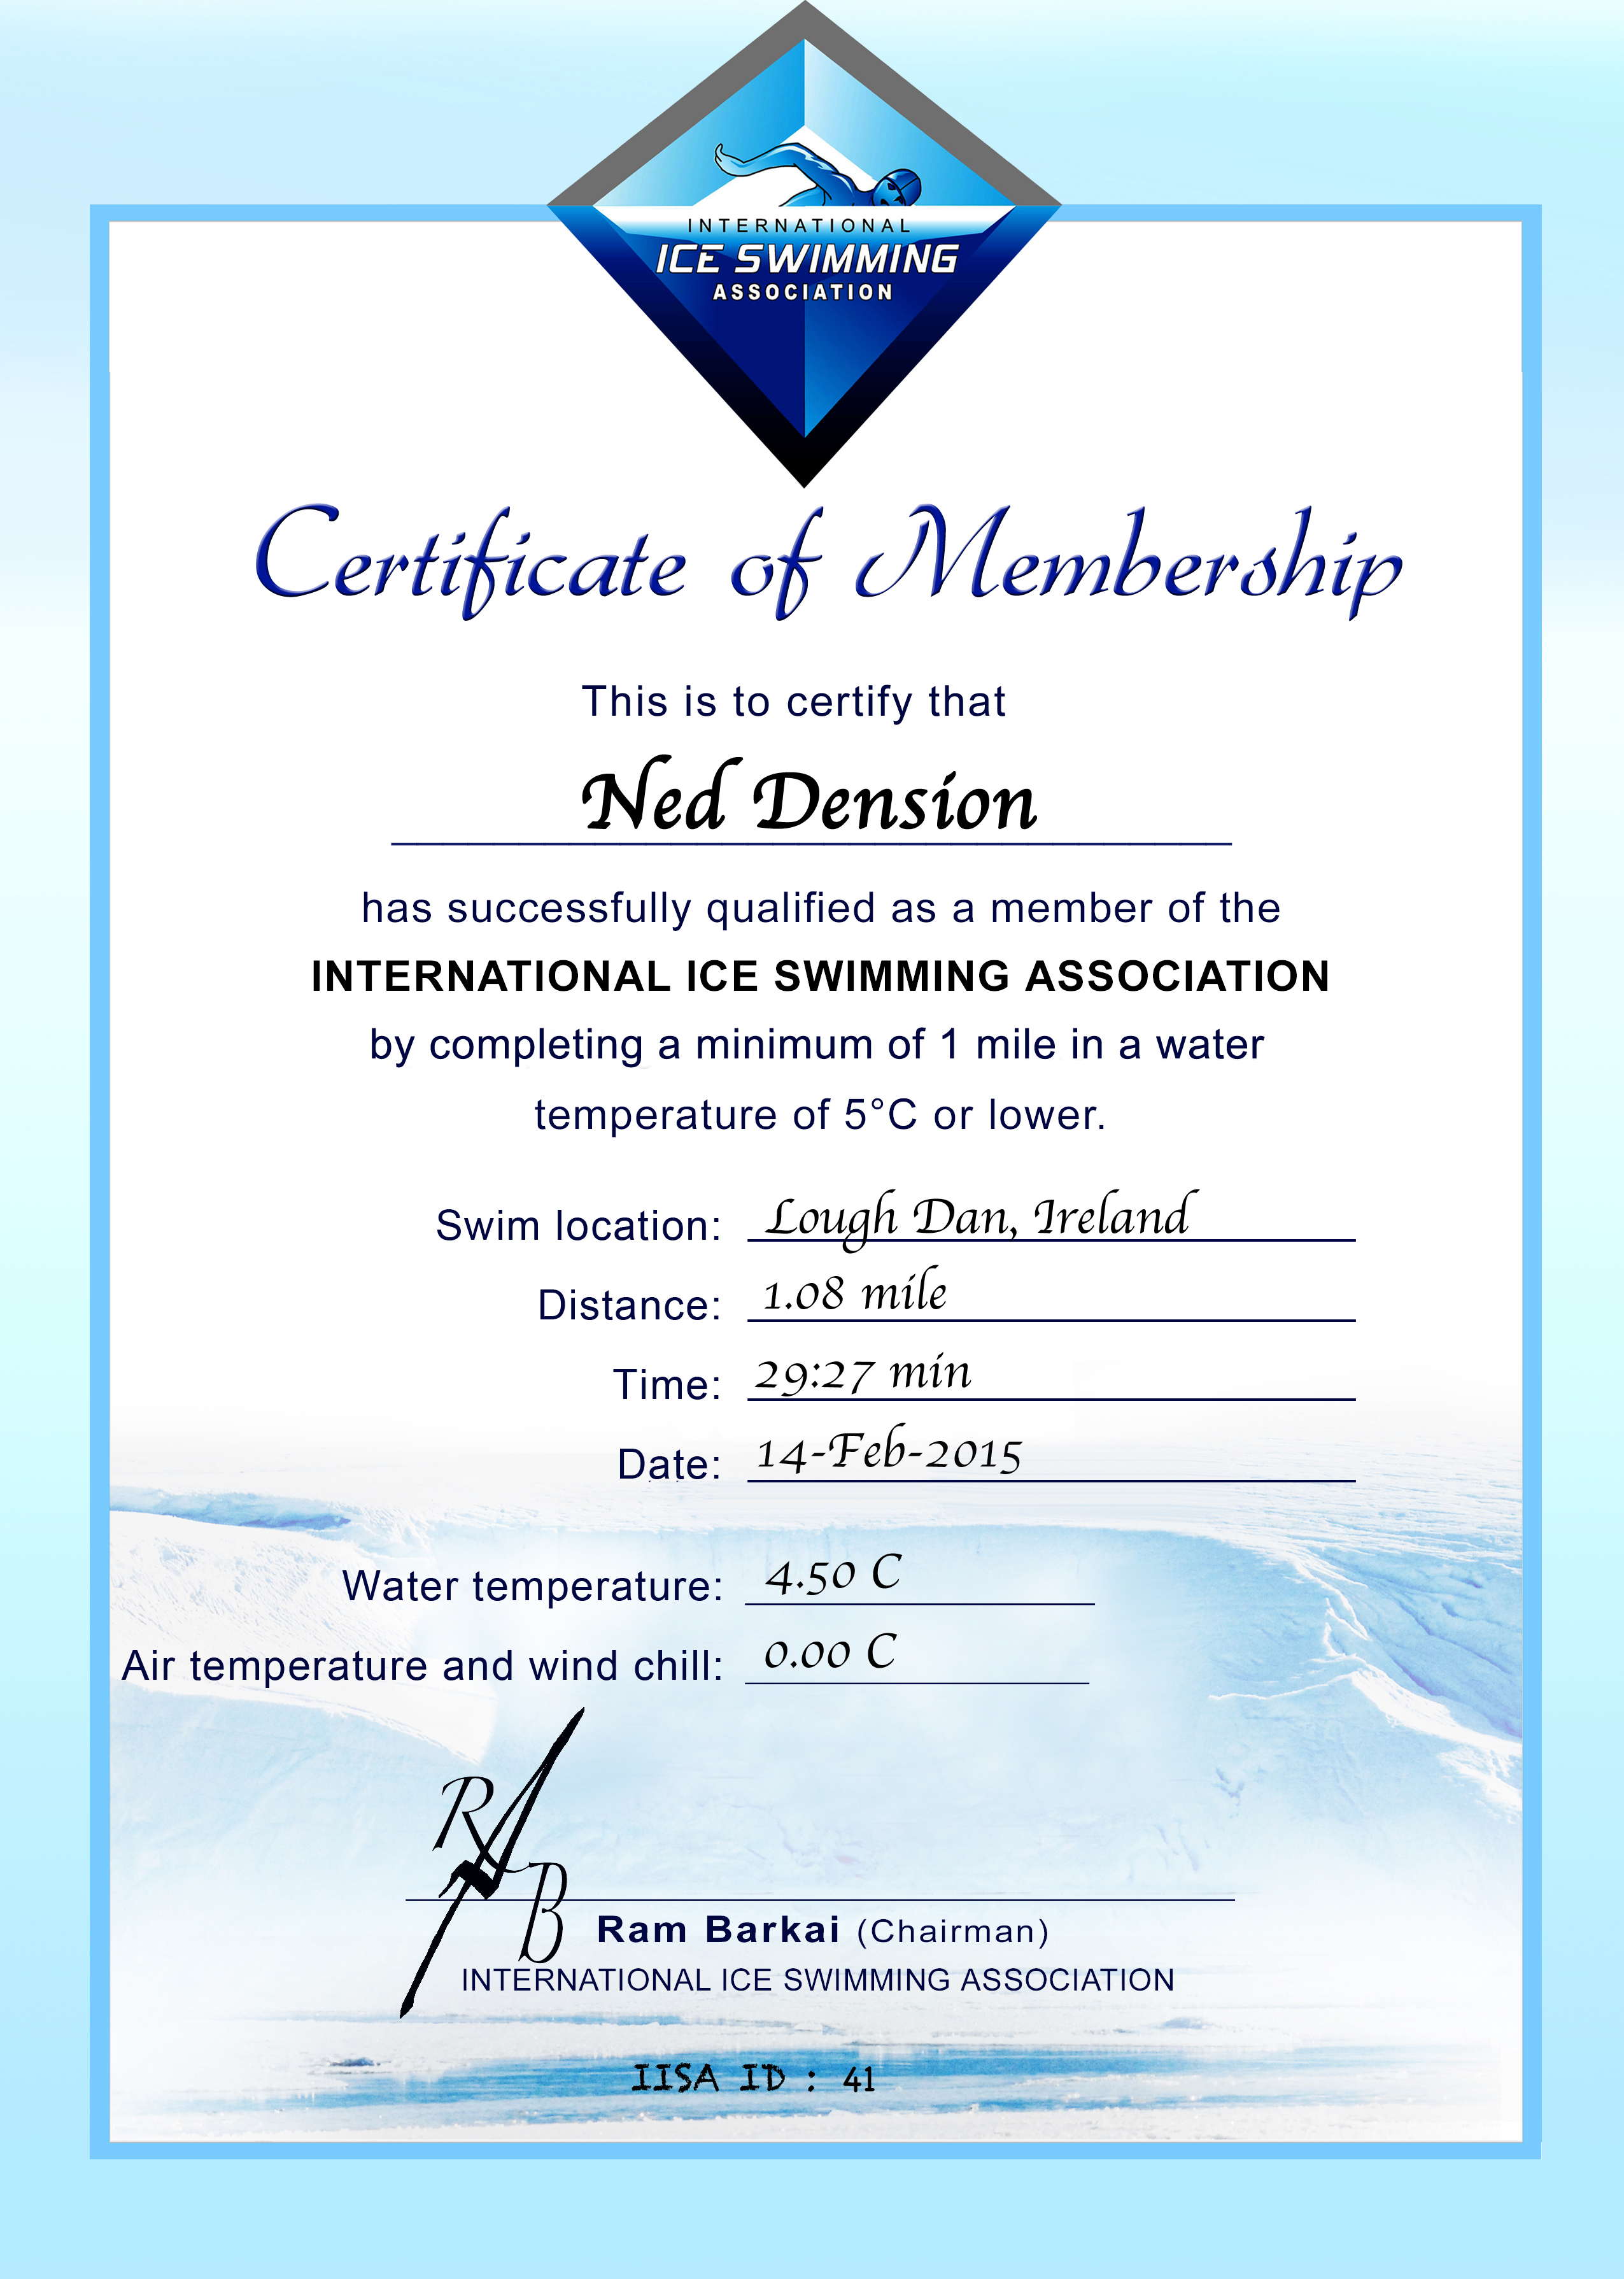 Ice Mile Certificate - Ned Denison